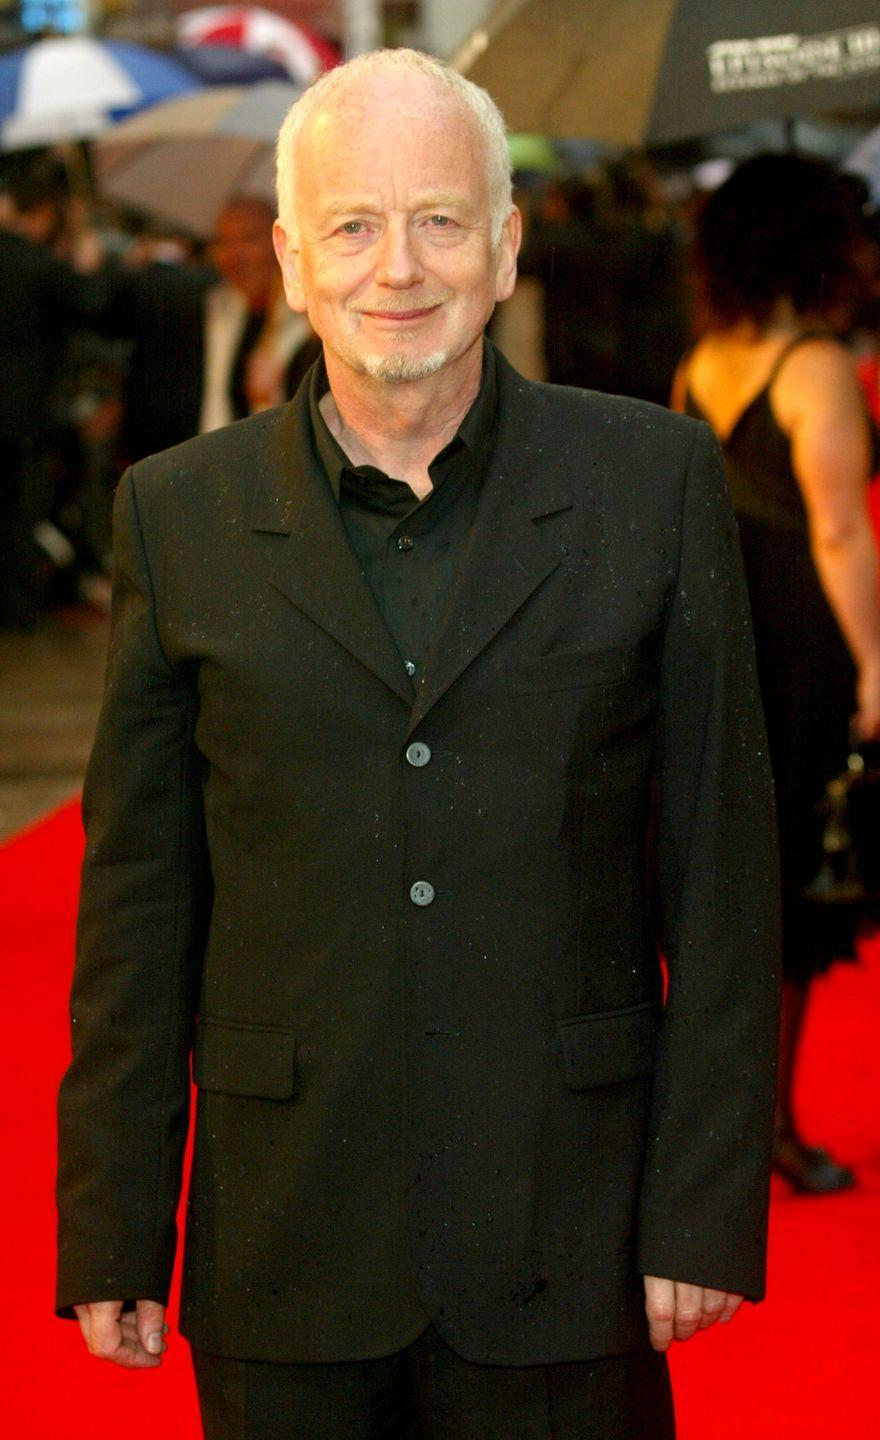 <p>McDiarmid portrayed Palpatine for most of his appearances in the original trilogy as well as the prequels. The traditional stage actor also voiced the villain in the animated series, <em>Star Wars Rebels.</em></p>